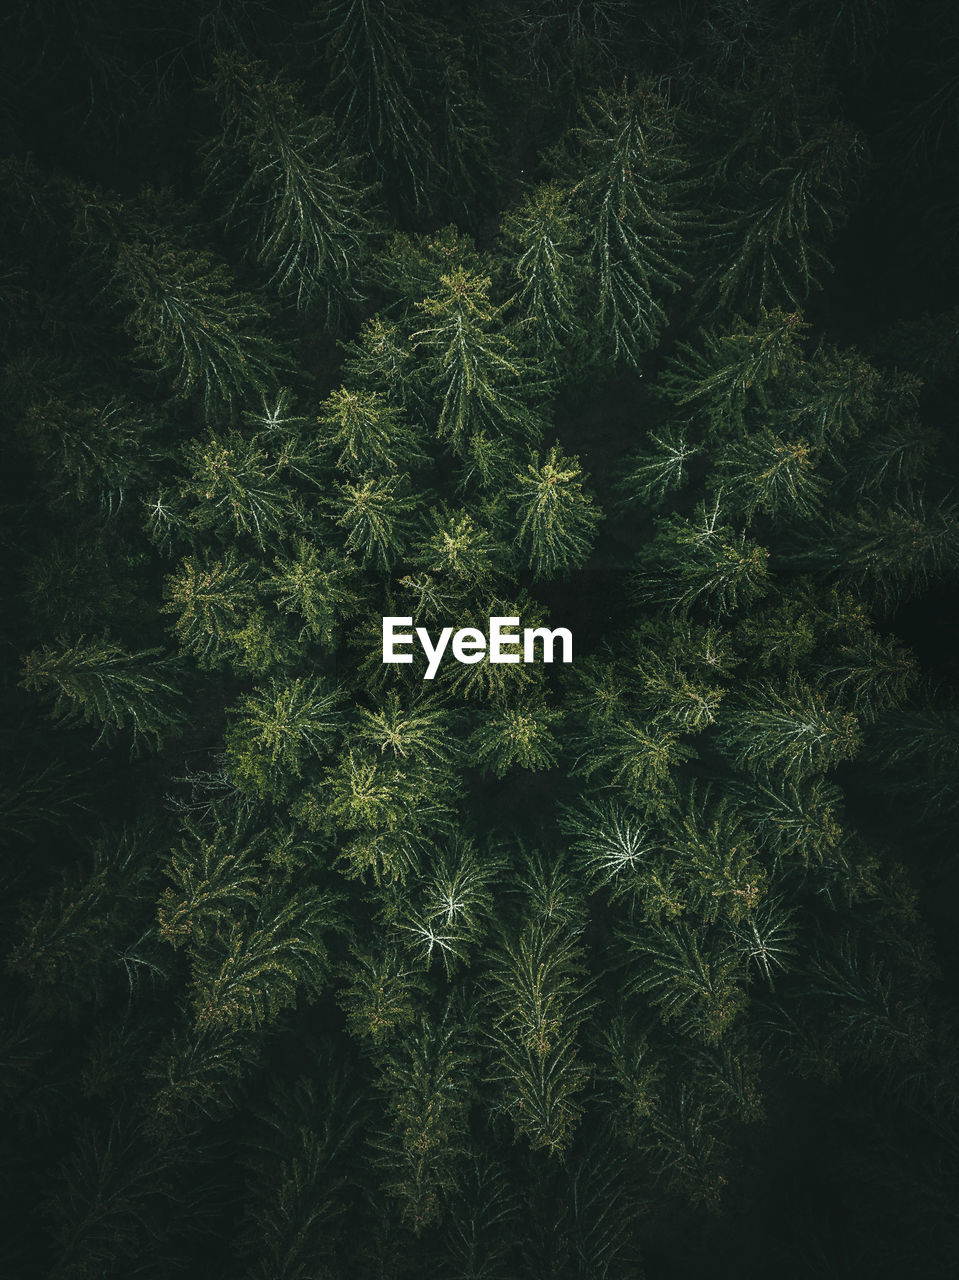 plant, growth, green color, no people, nature, tree, backgrounds, full frame, beauty in nature, day, tranquility, close-up, pattern, outdoors, land, branch, field, freshness, coniferous tree, high angle view, needle - plant part, pine tree, fir tree